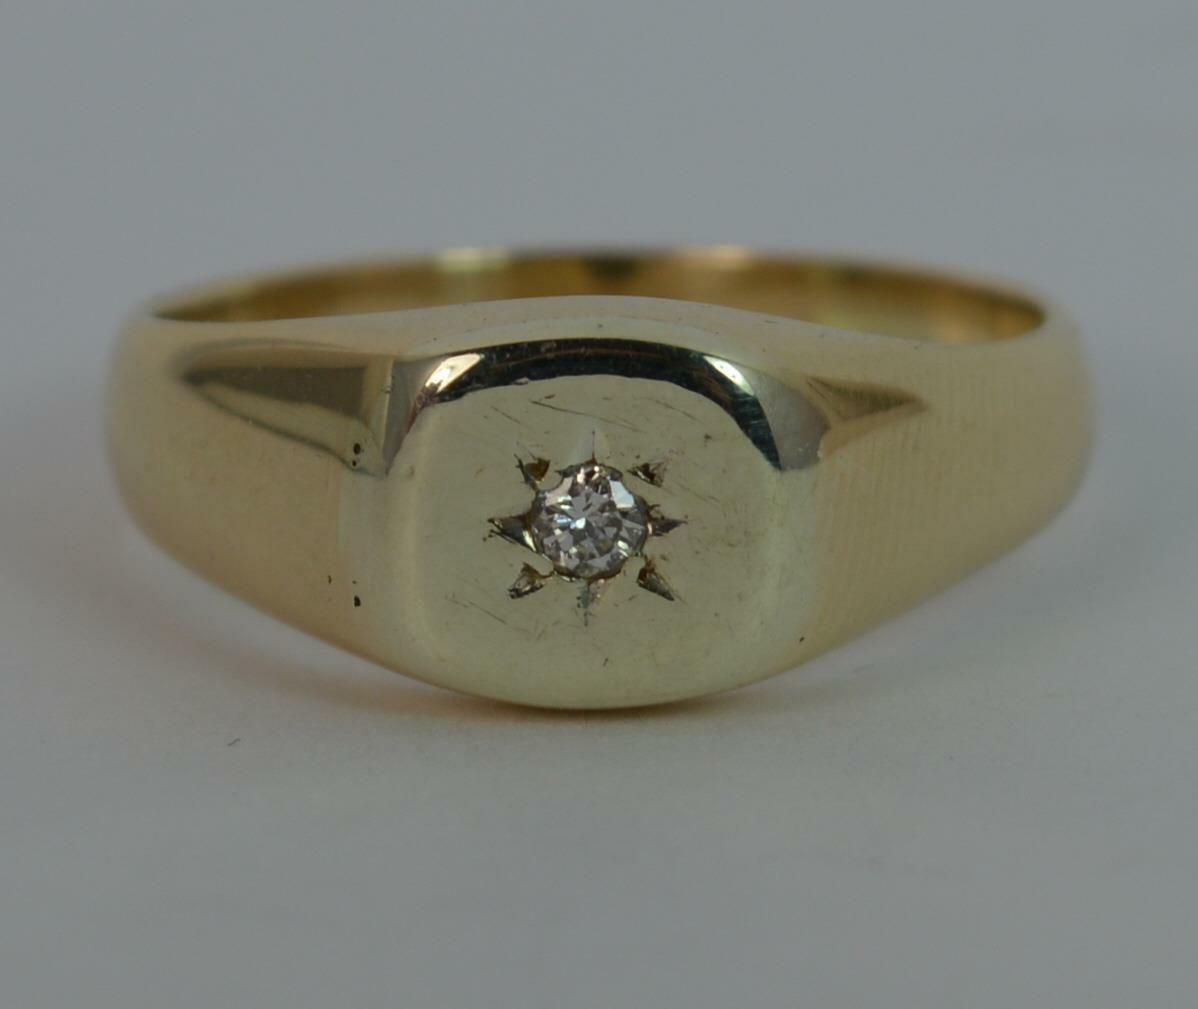 9 carat gold and signet ring p0468 163 195 00